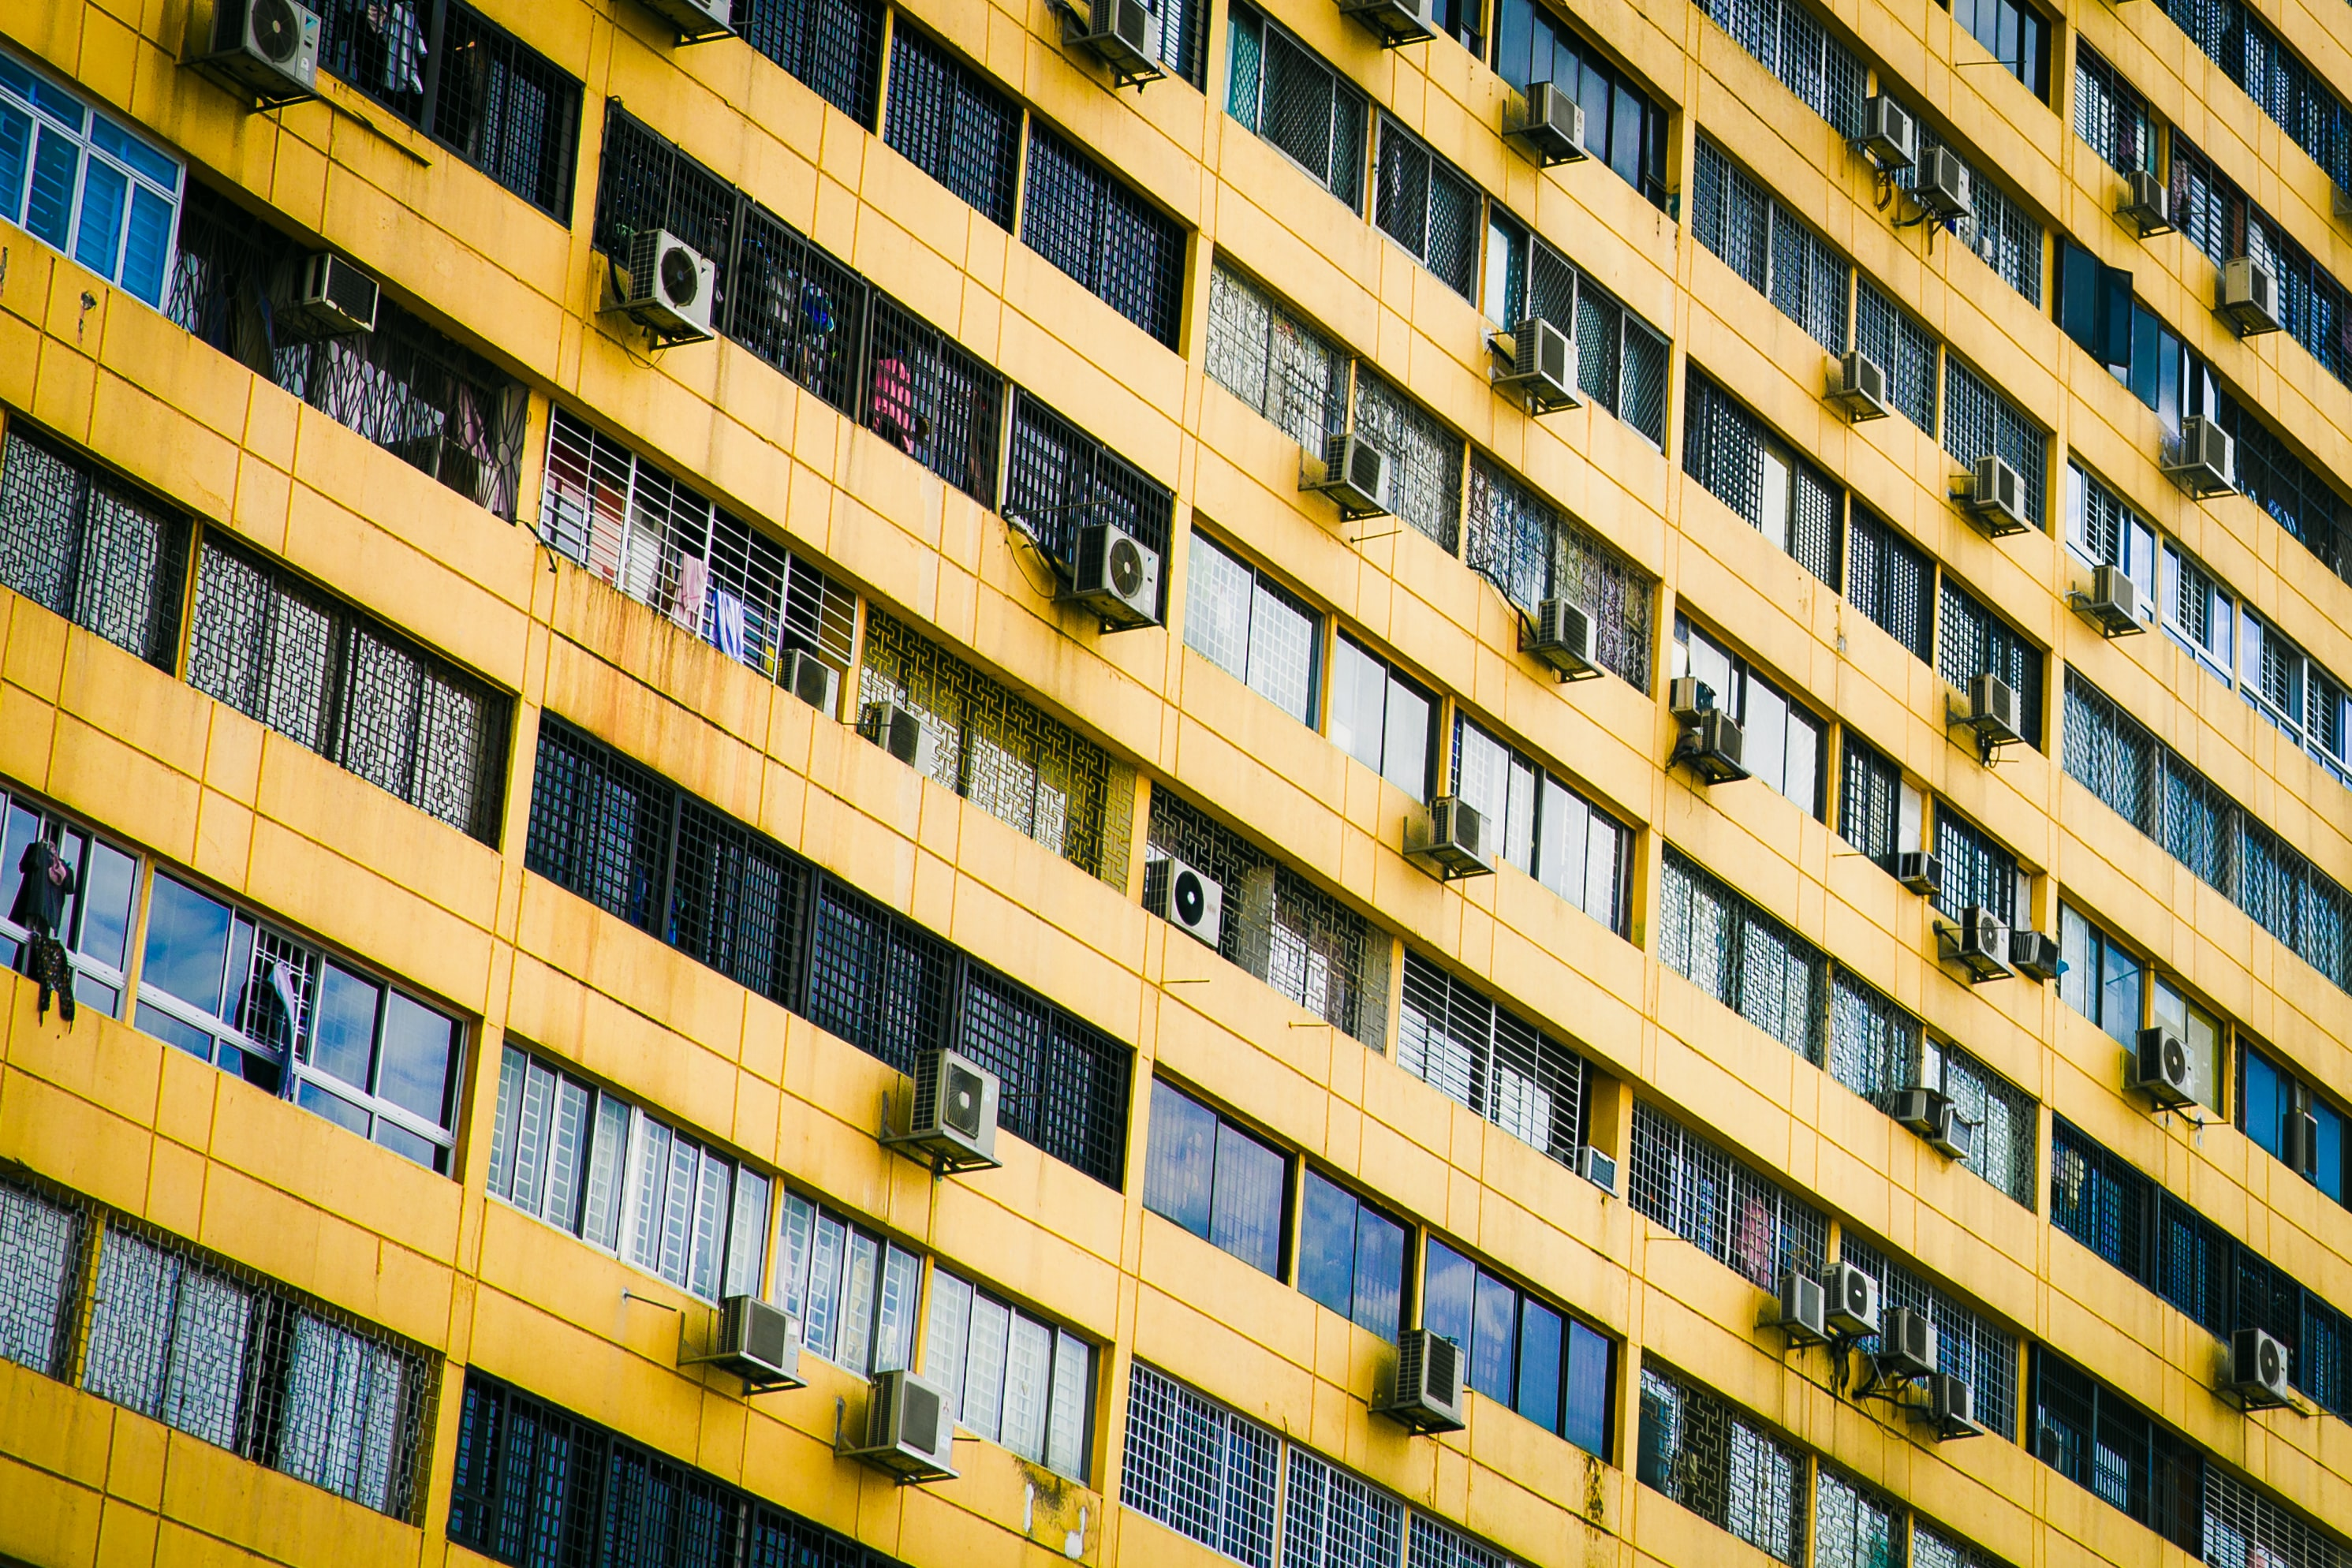 Apartment building with yellow wall.